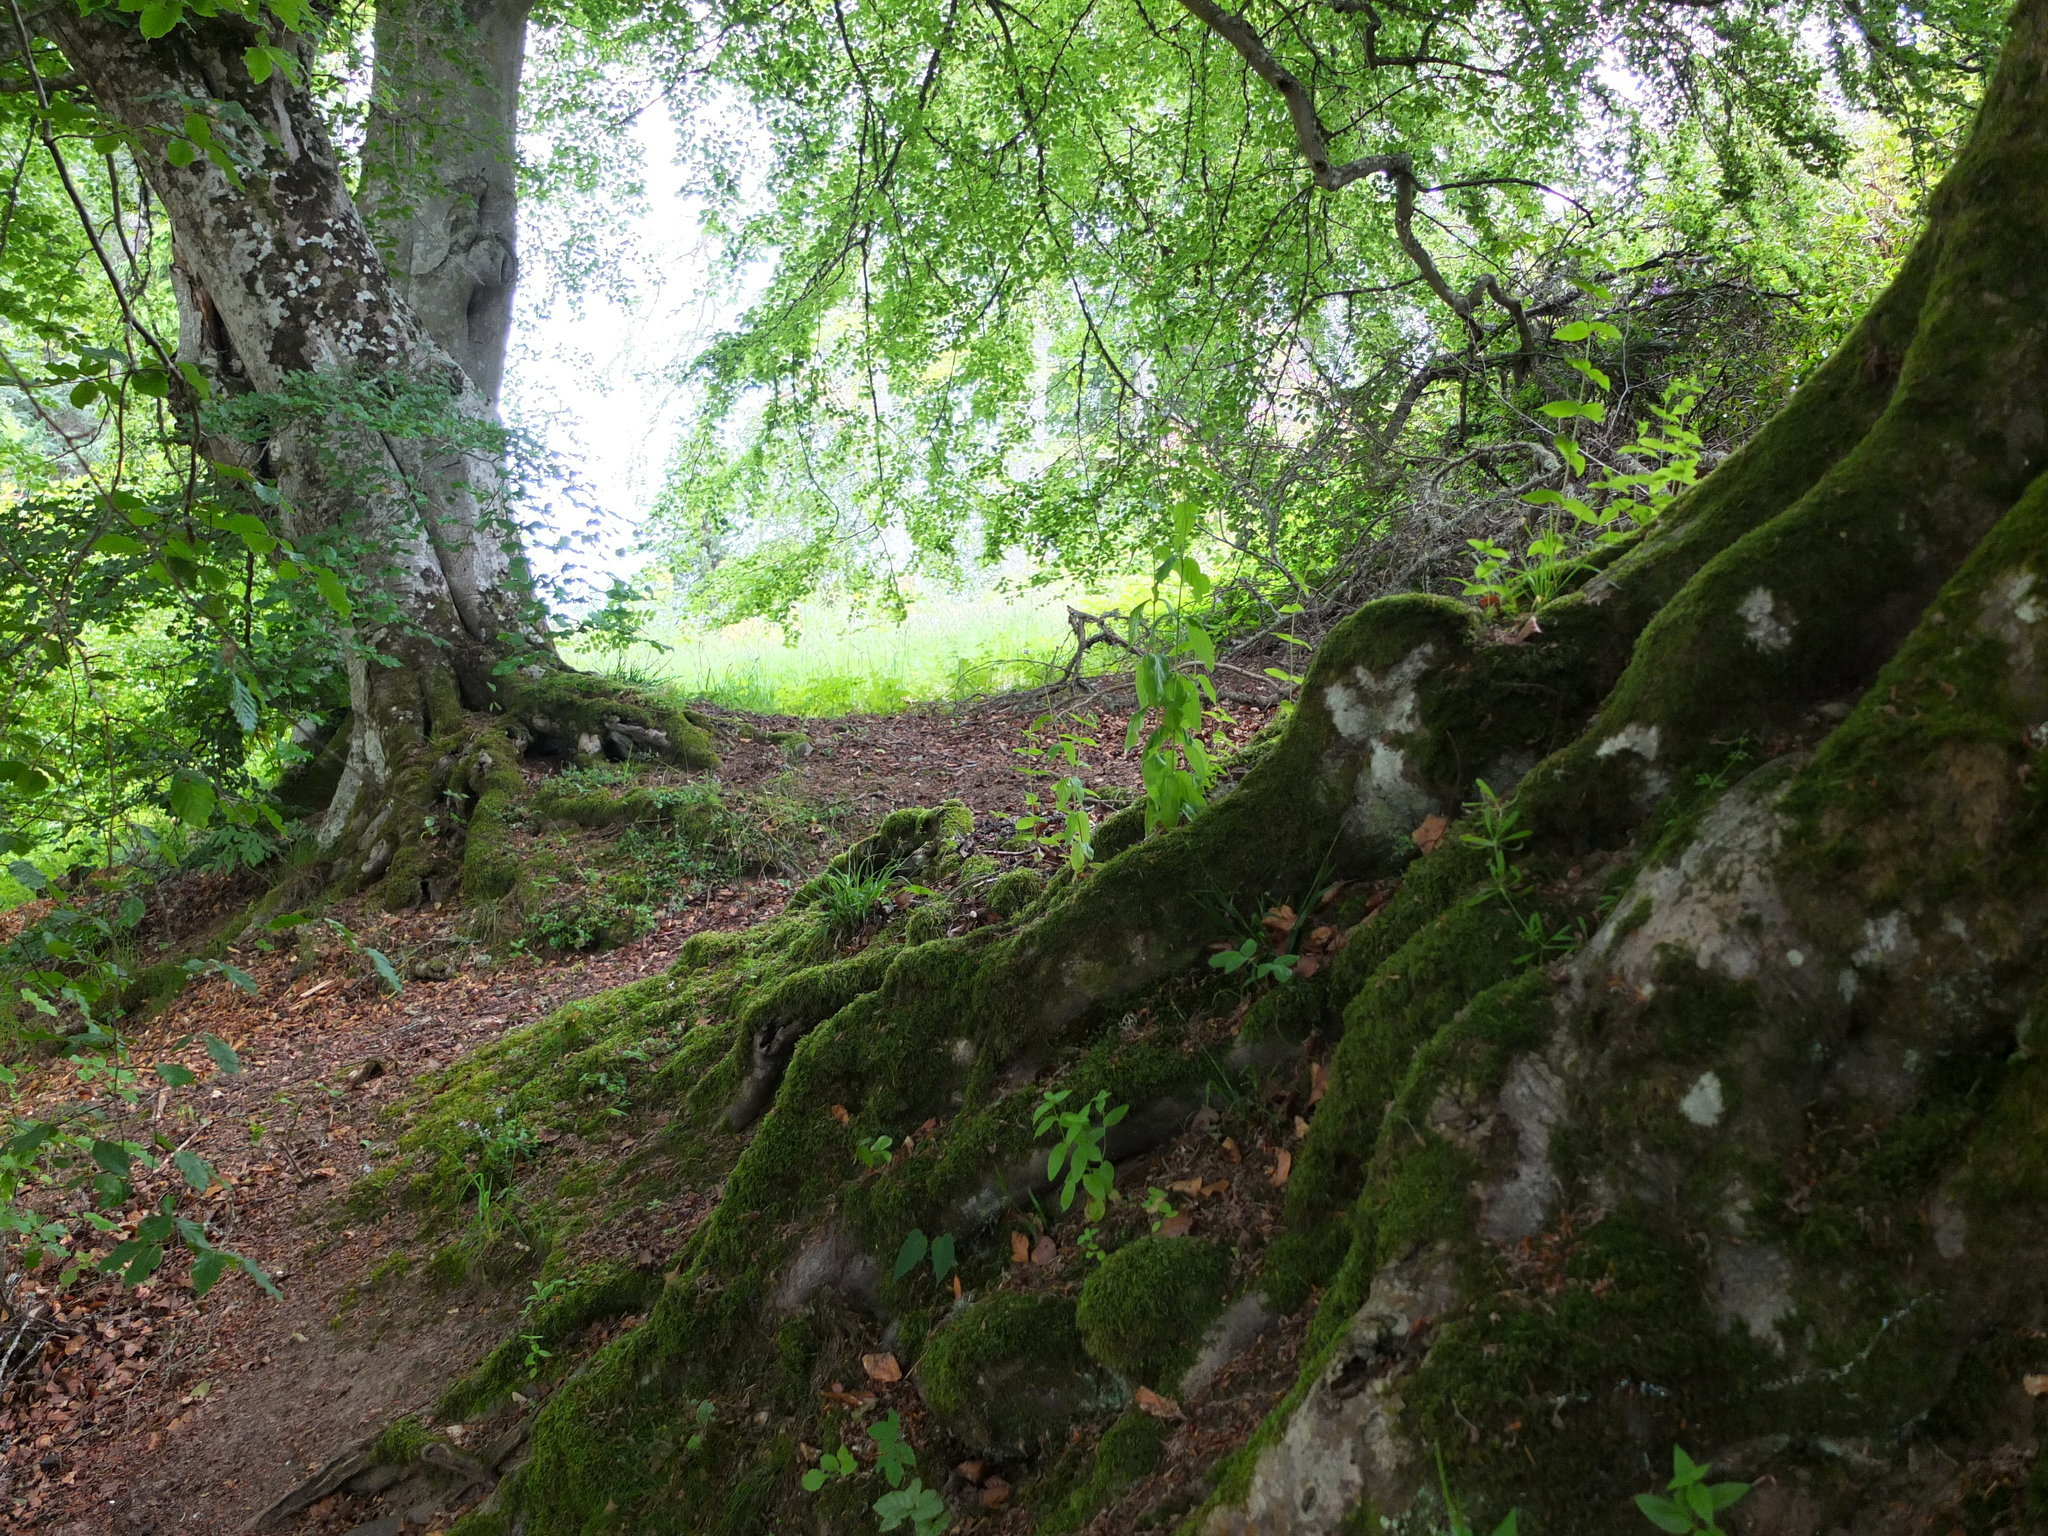 Deep in the Beech Tree Woods by Alison Gracie (2017)